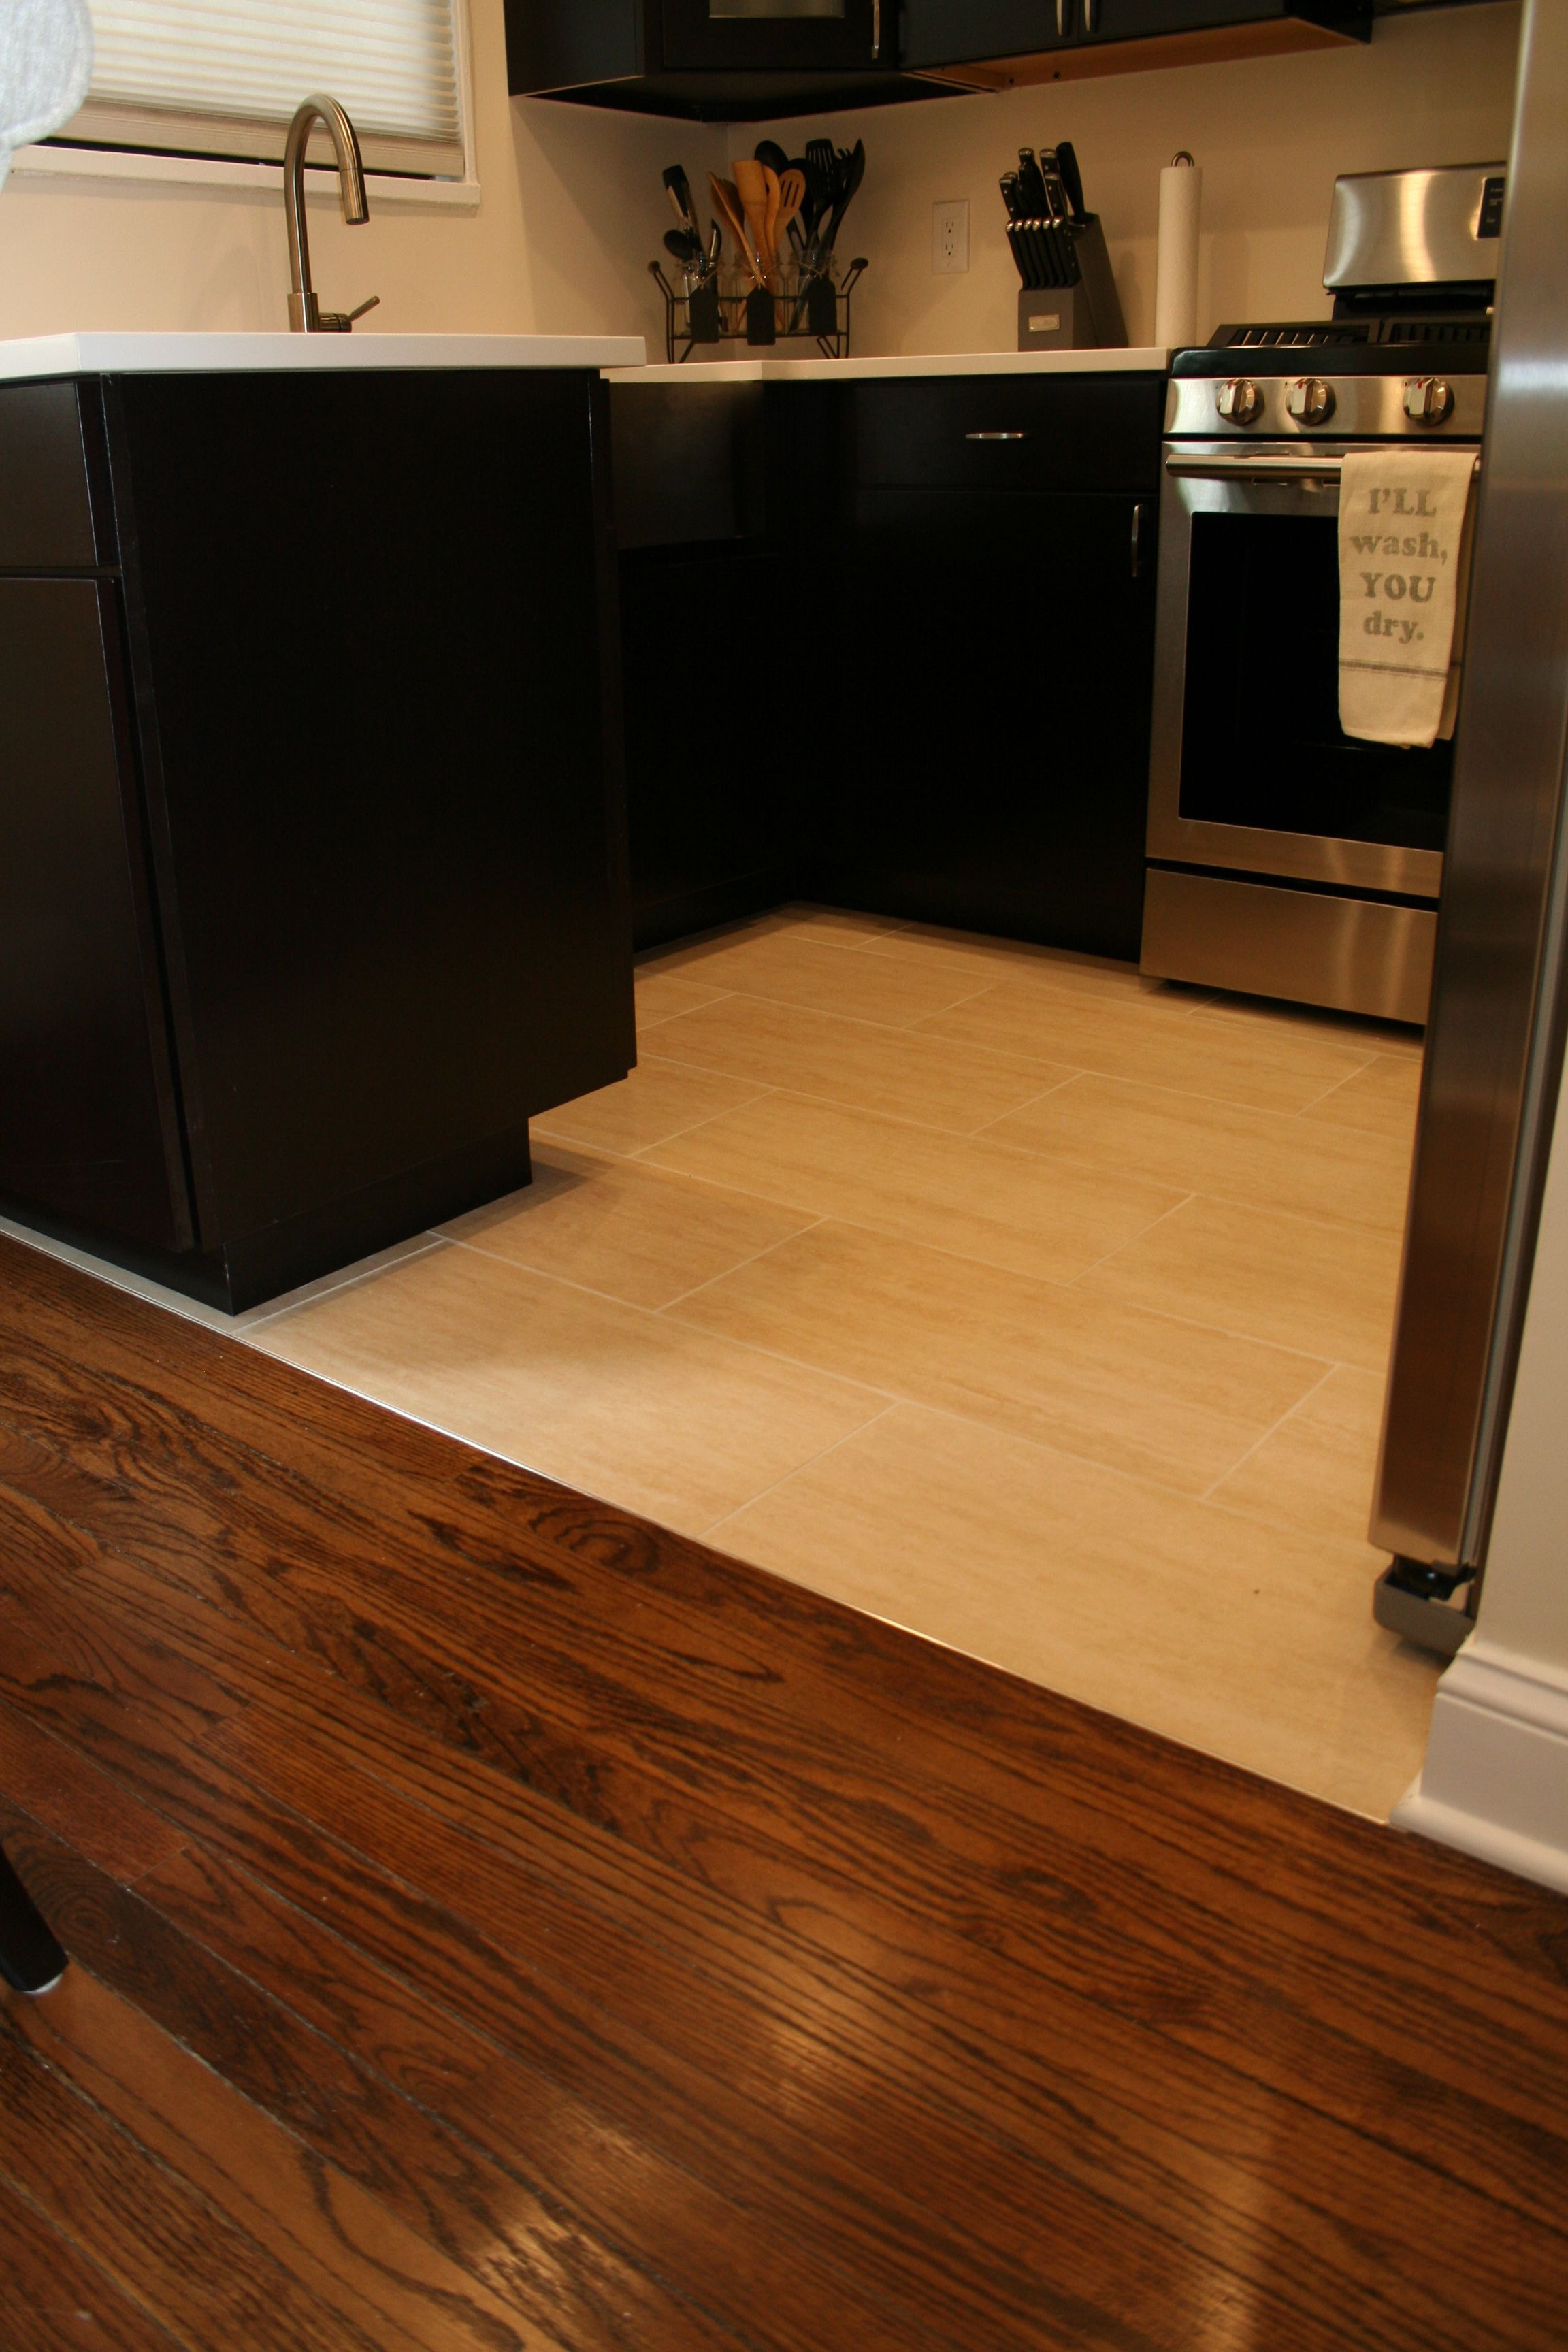 is hardwood floors in kitchen a good idea of pin by kabinet king on our work pinterest flooring tiles and for dark wood floors beautiful dark wood floors love the dark bamboo floors and pewter walls